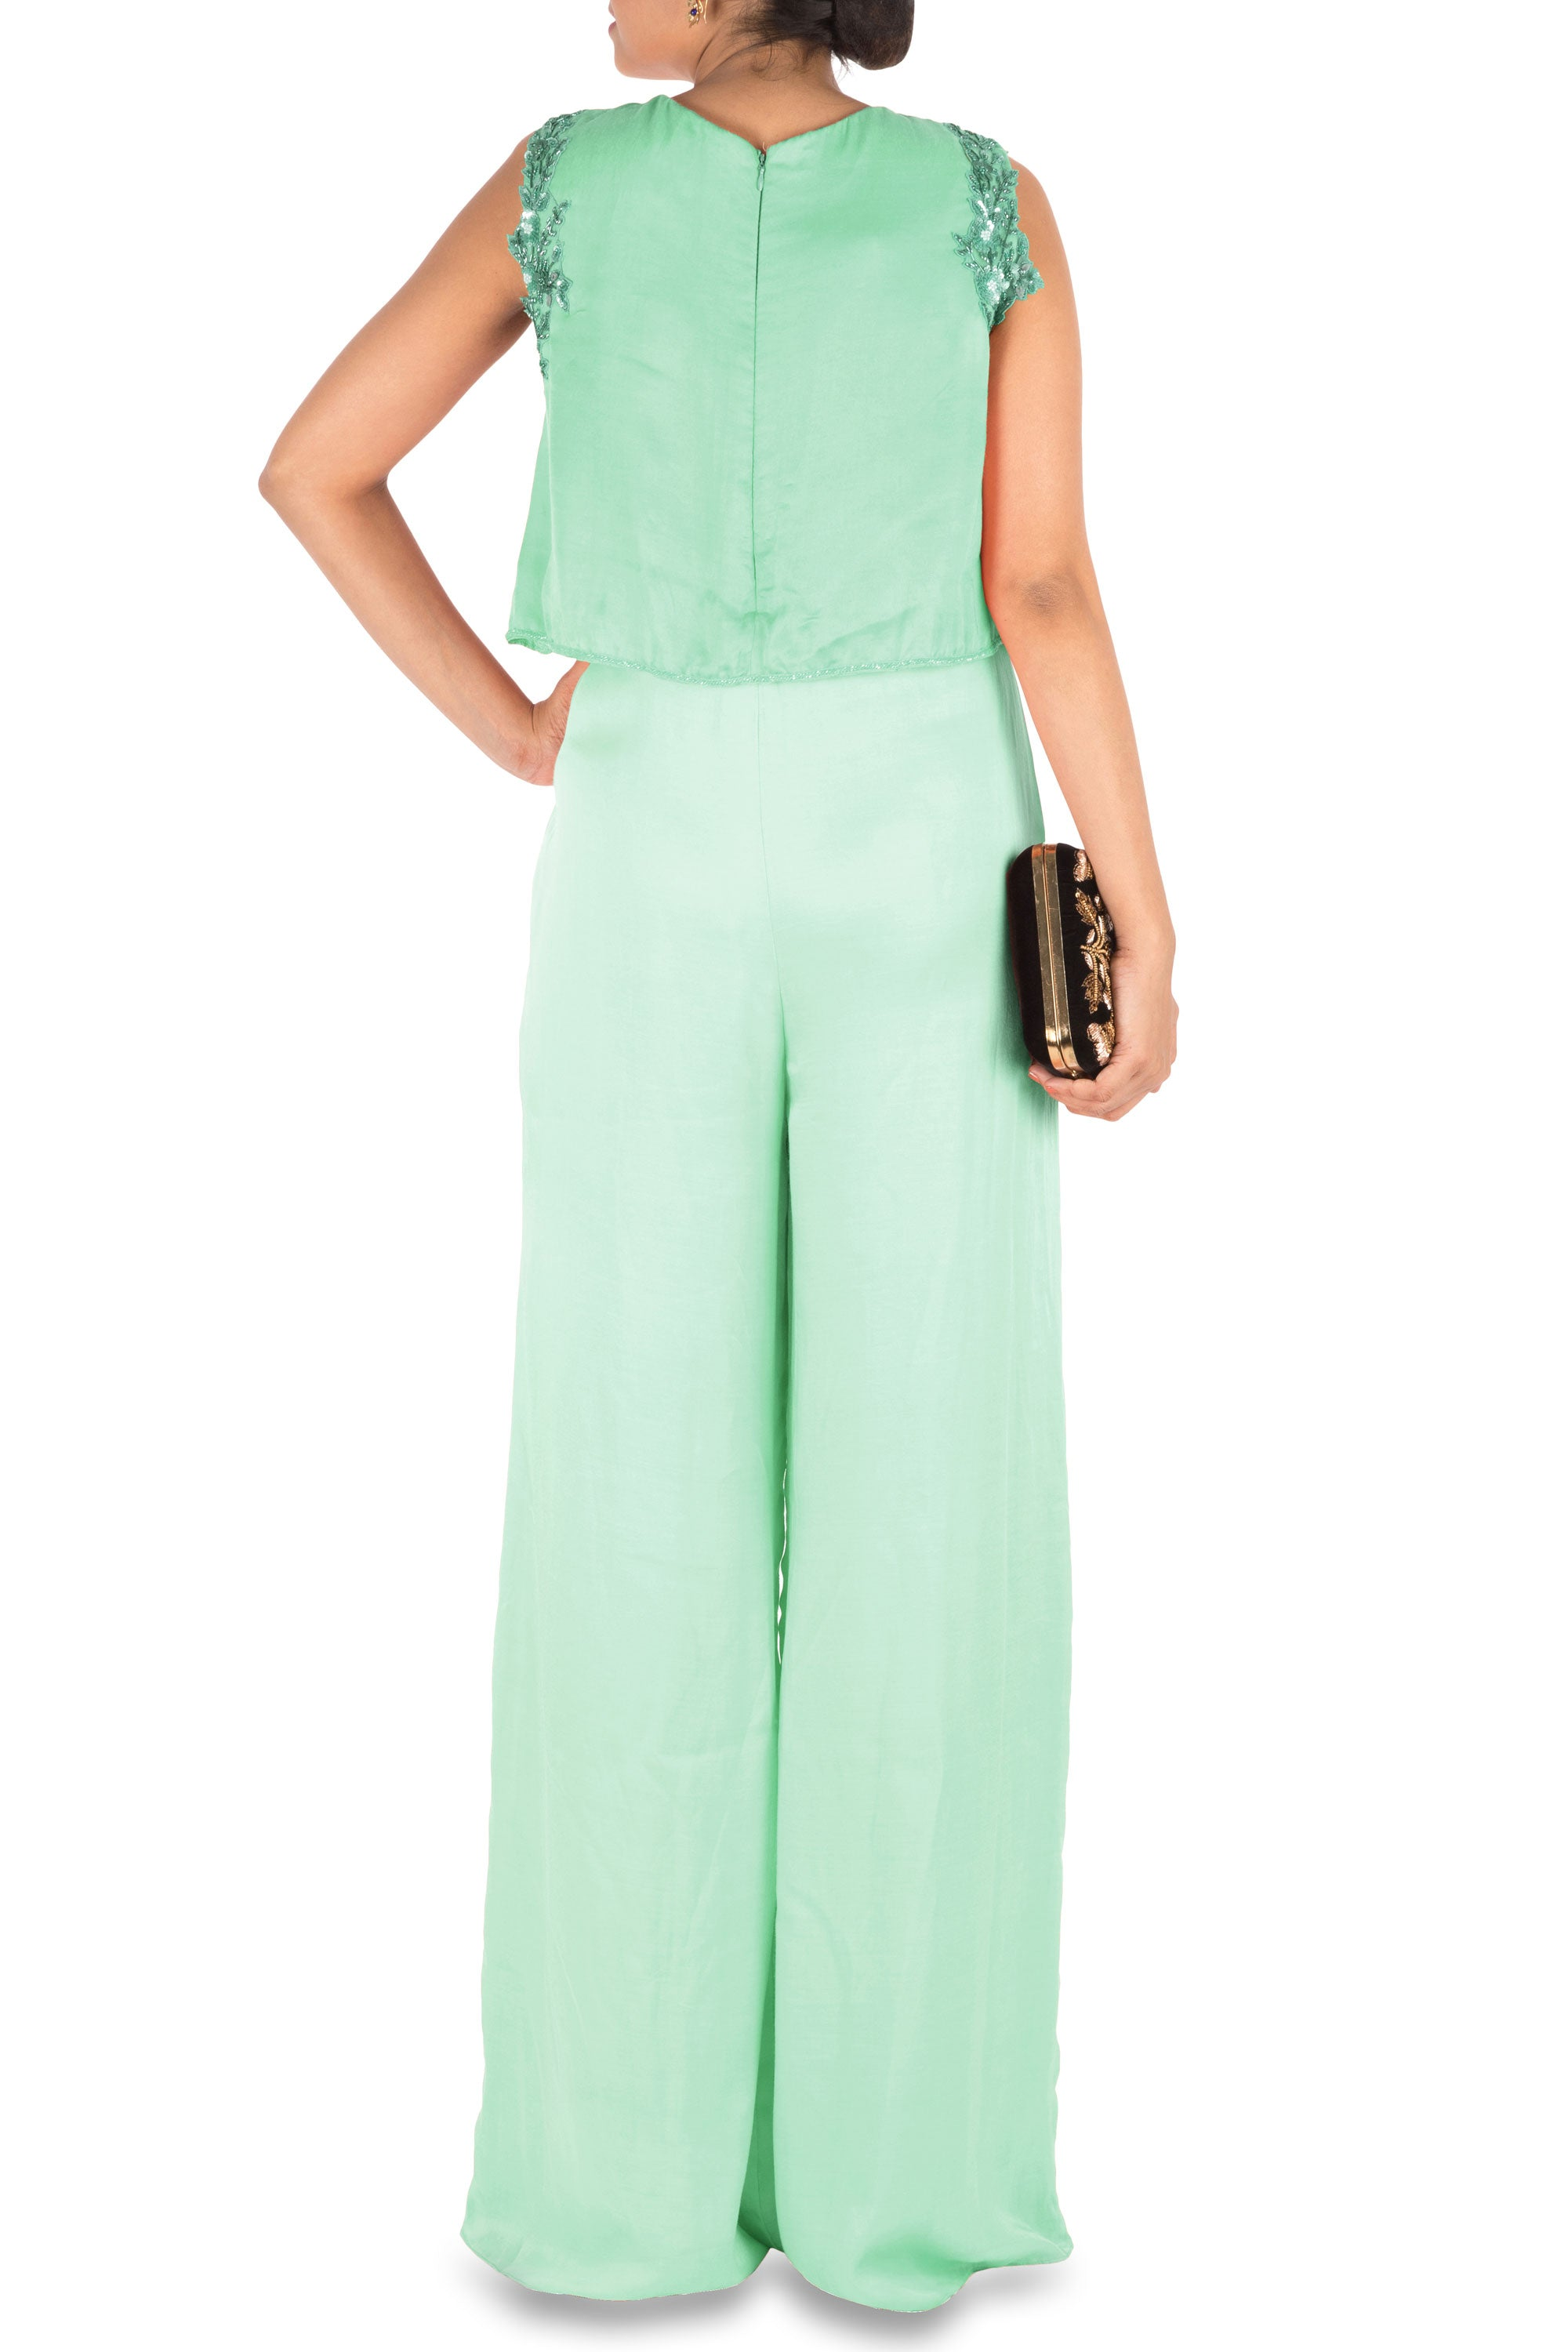 Sea Green Jumpsuit With Attach Jacket Back